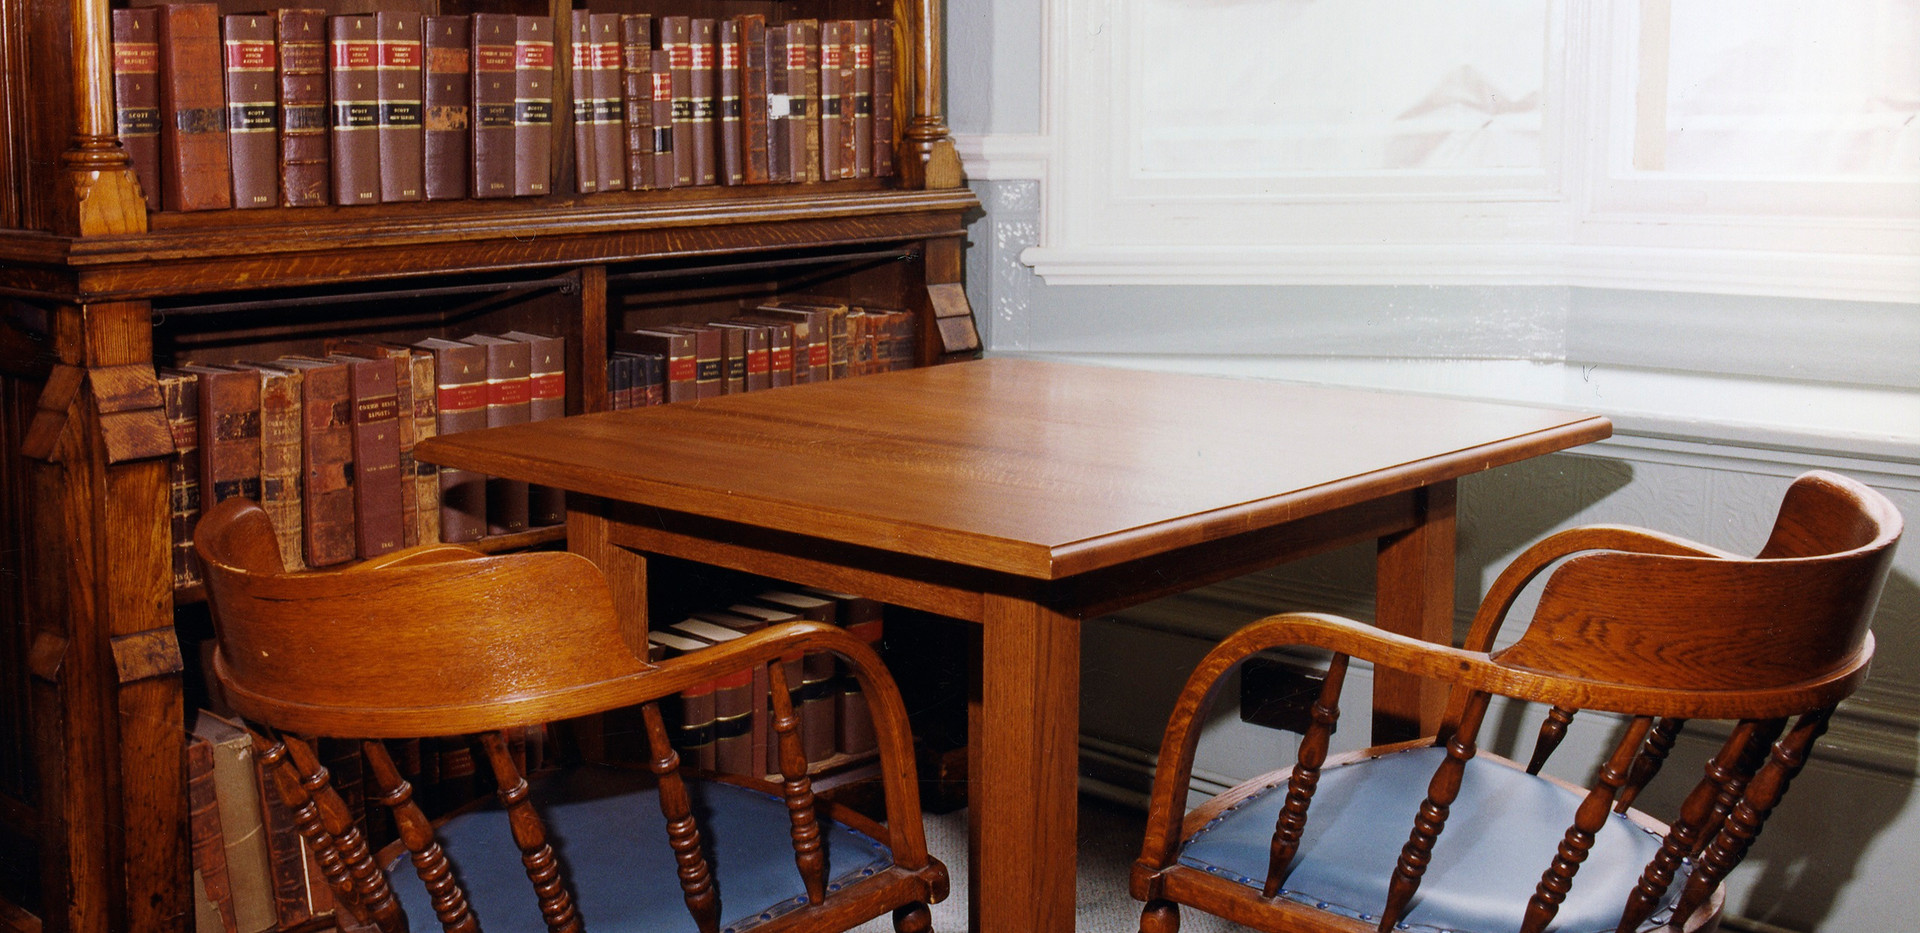 Library reading tables.